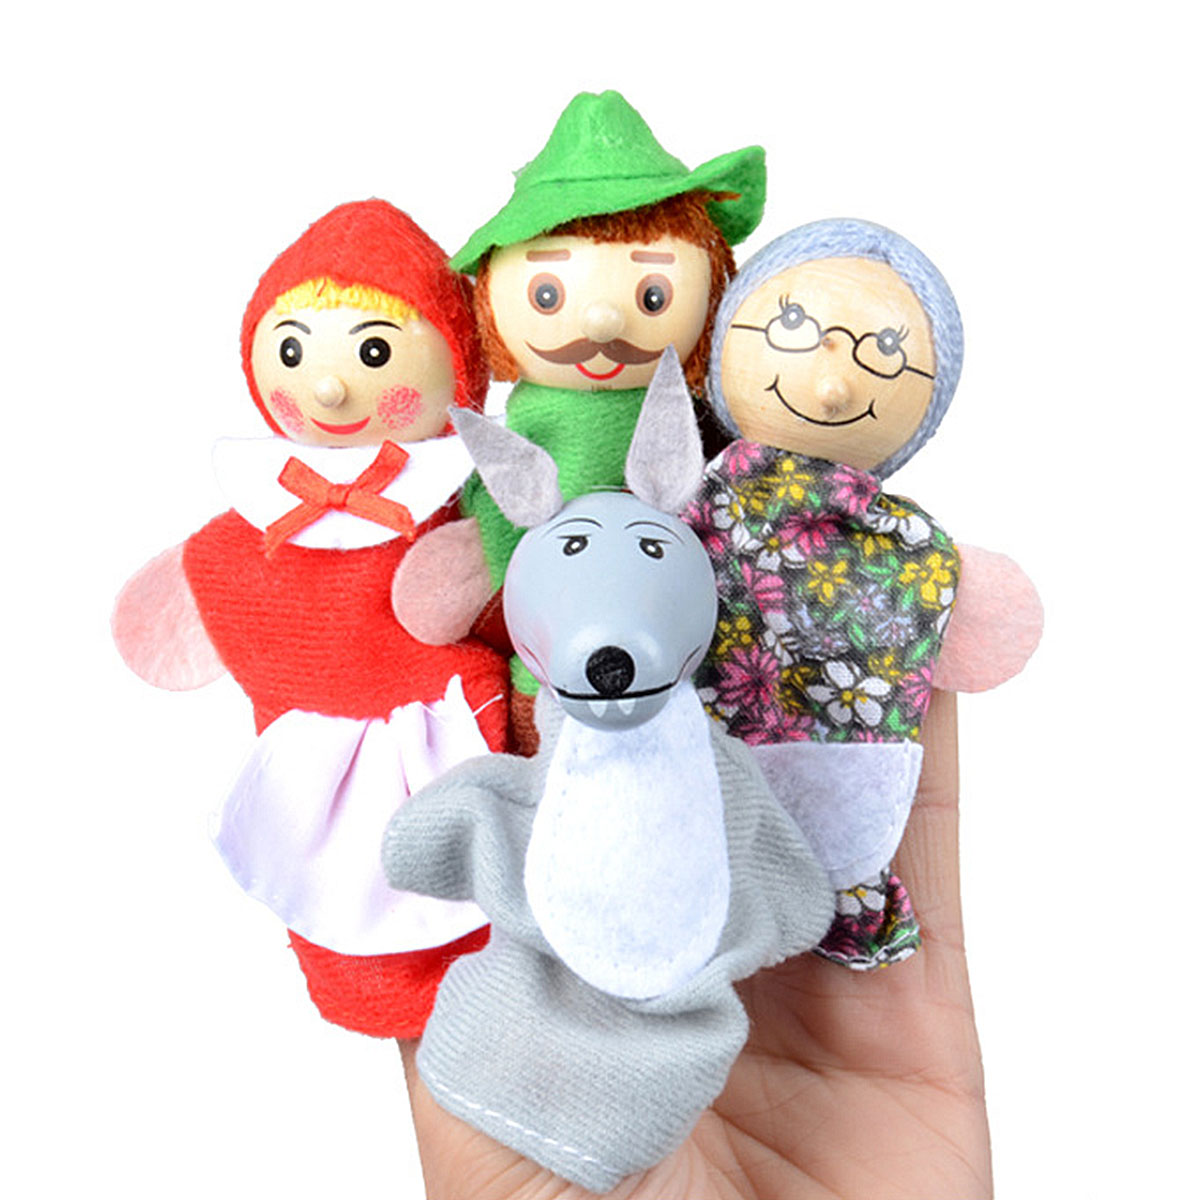 Puppets Dolls Fairy Tale Characters Finger Puppet Soft Theater Show Props Children Toys Gift Animal Baby Wolf Kids Xmas Gift